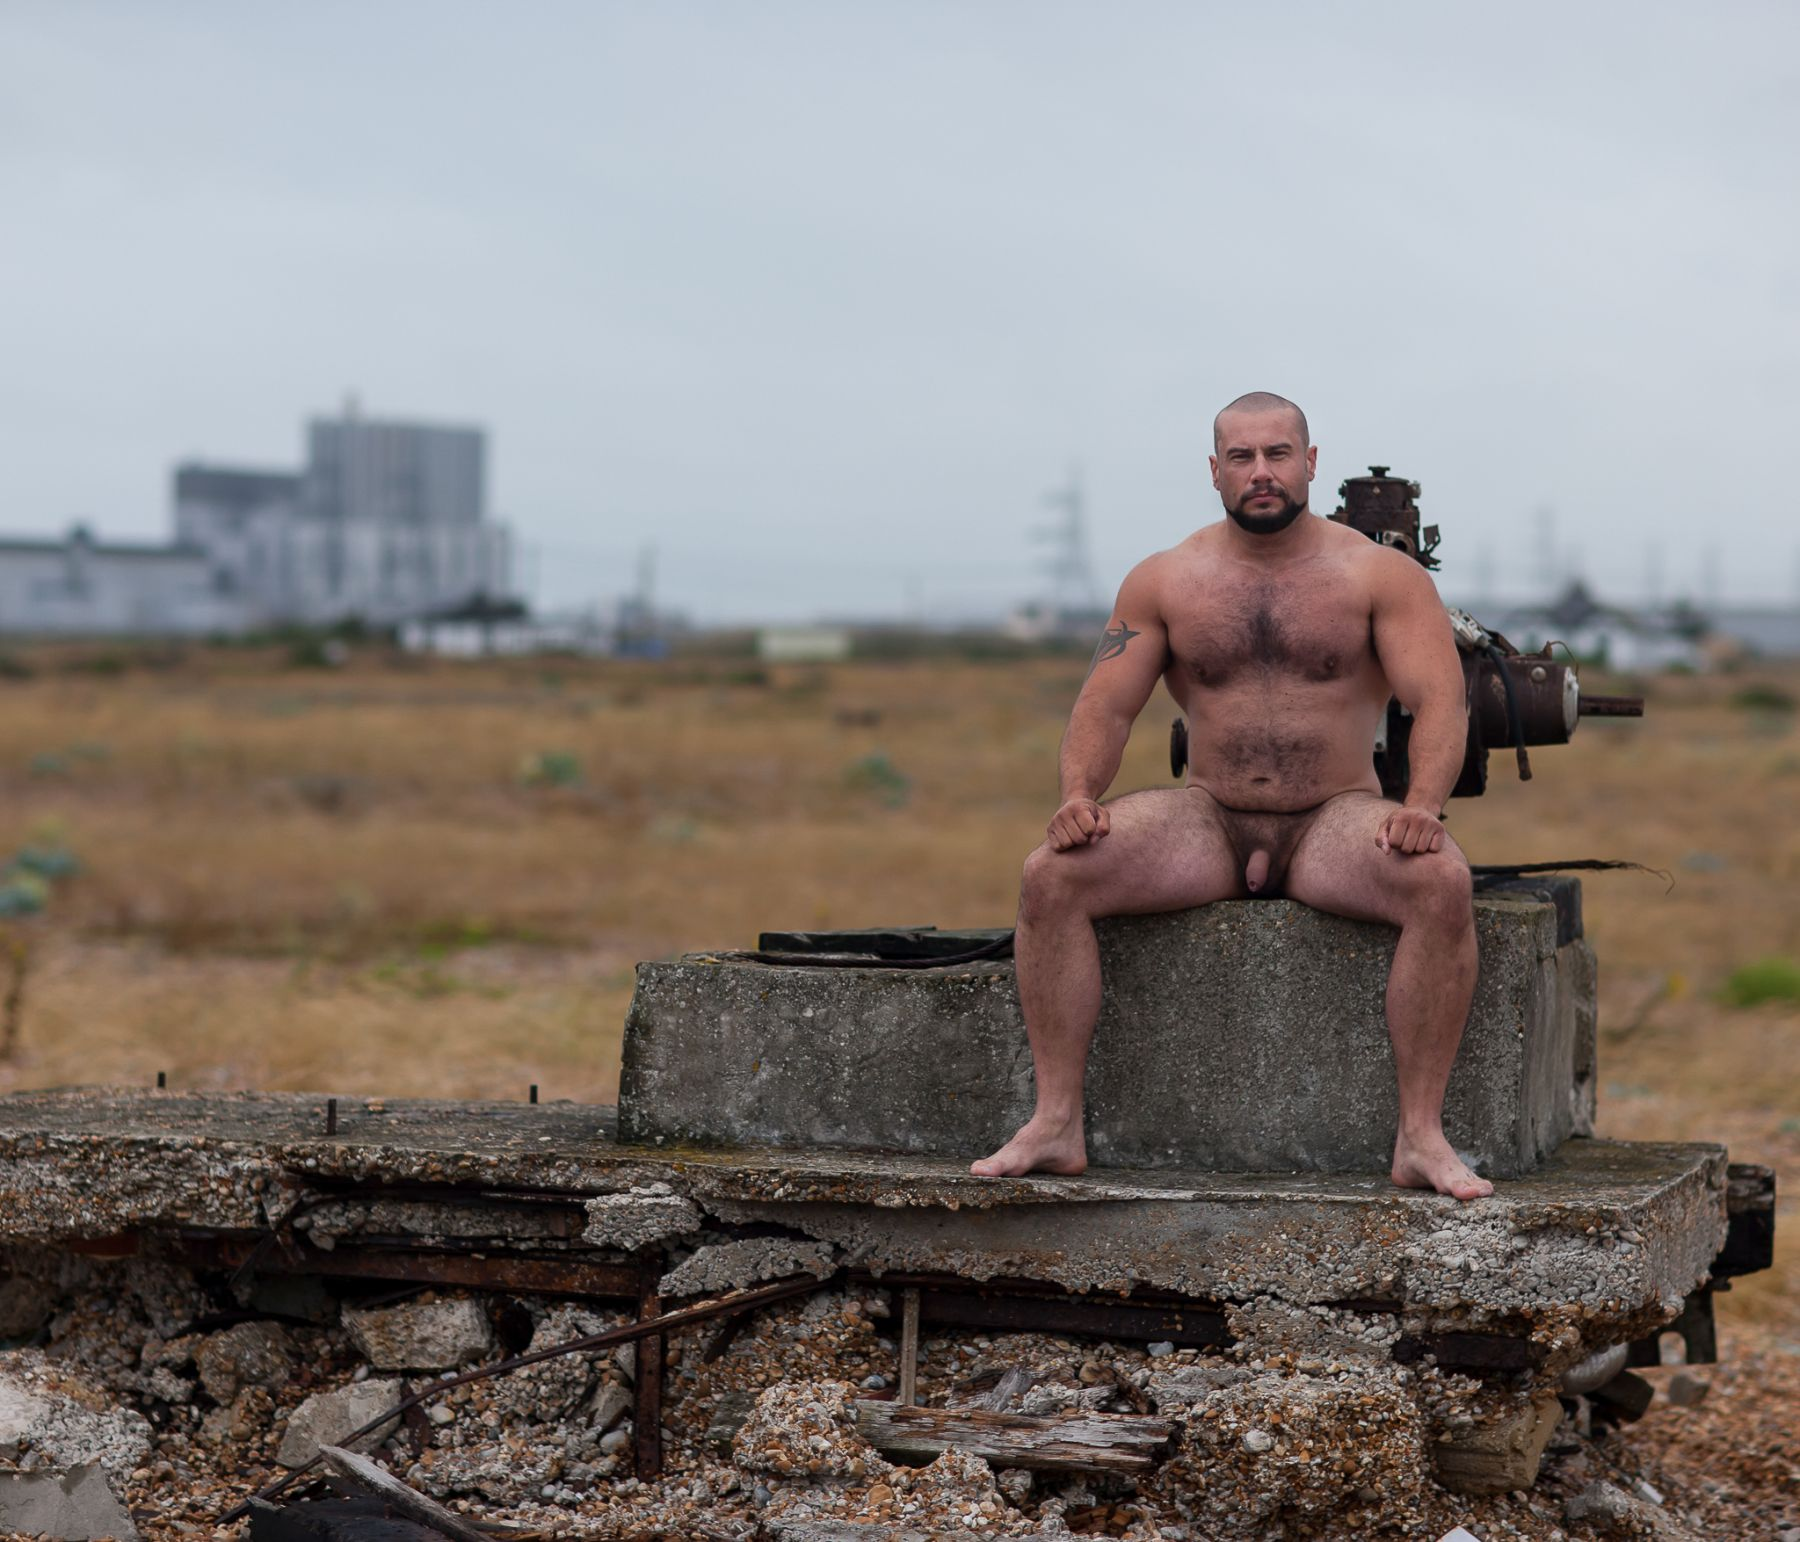 Pete N (8) | Dungeness, East Sussex, England 2013